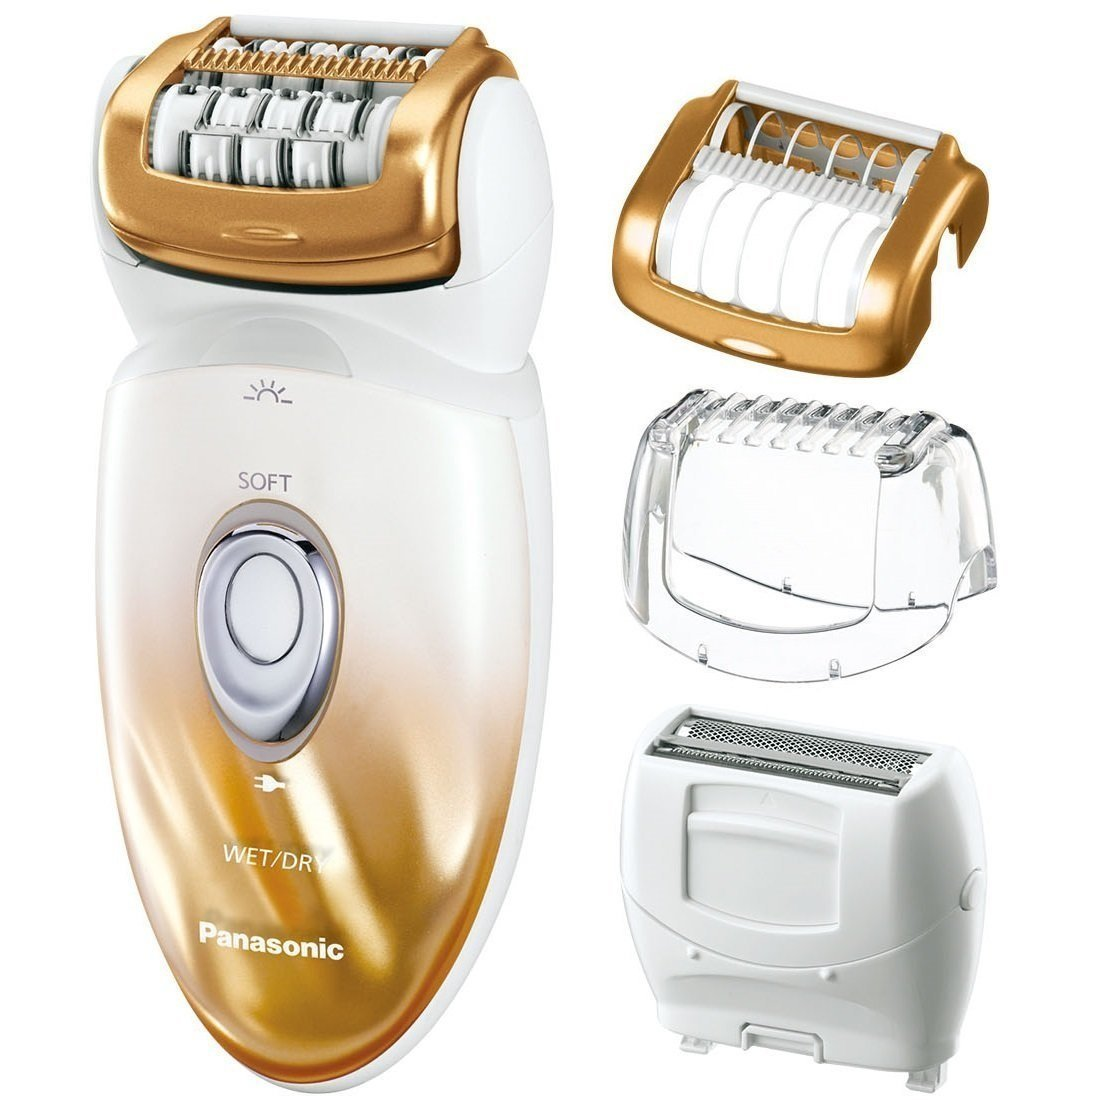 Panasonic® Women's Ladies Wet and Dry Cordless Epilator Review